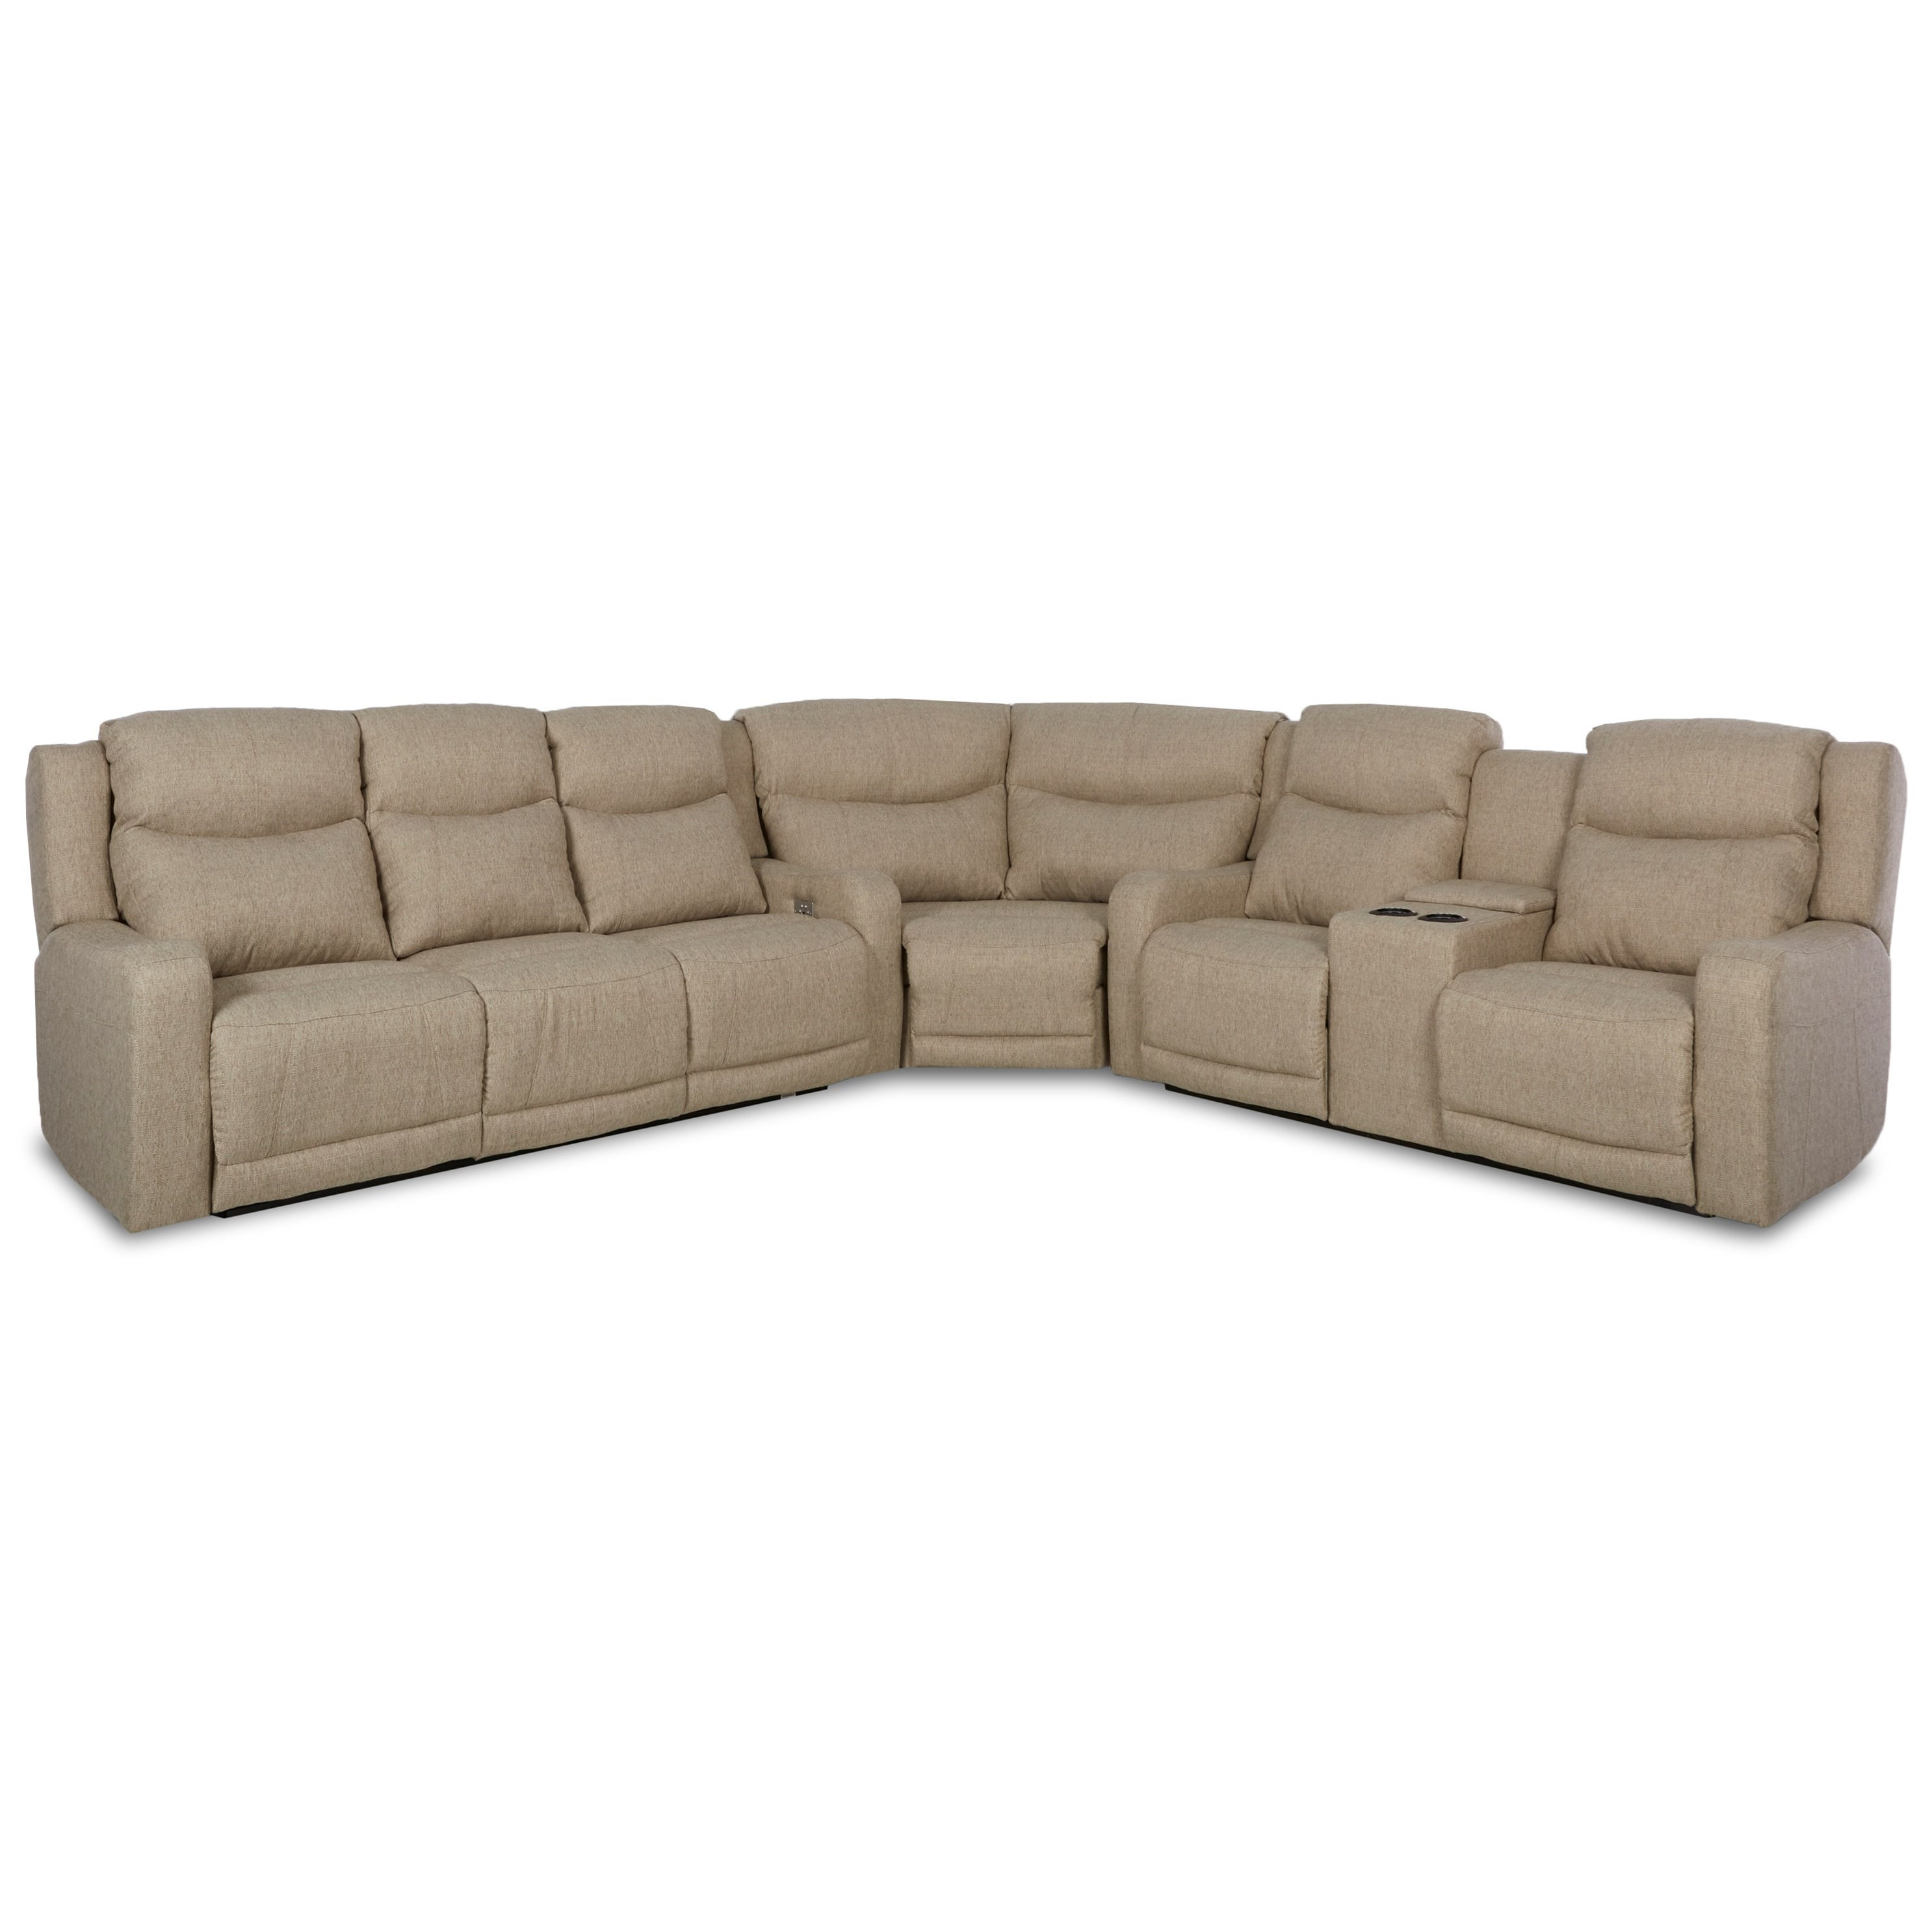 3 pc sectional sofa with recliners what is a loveseat klaussner barnett three power reclining